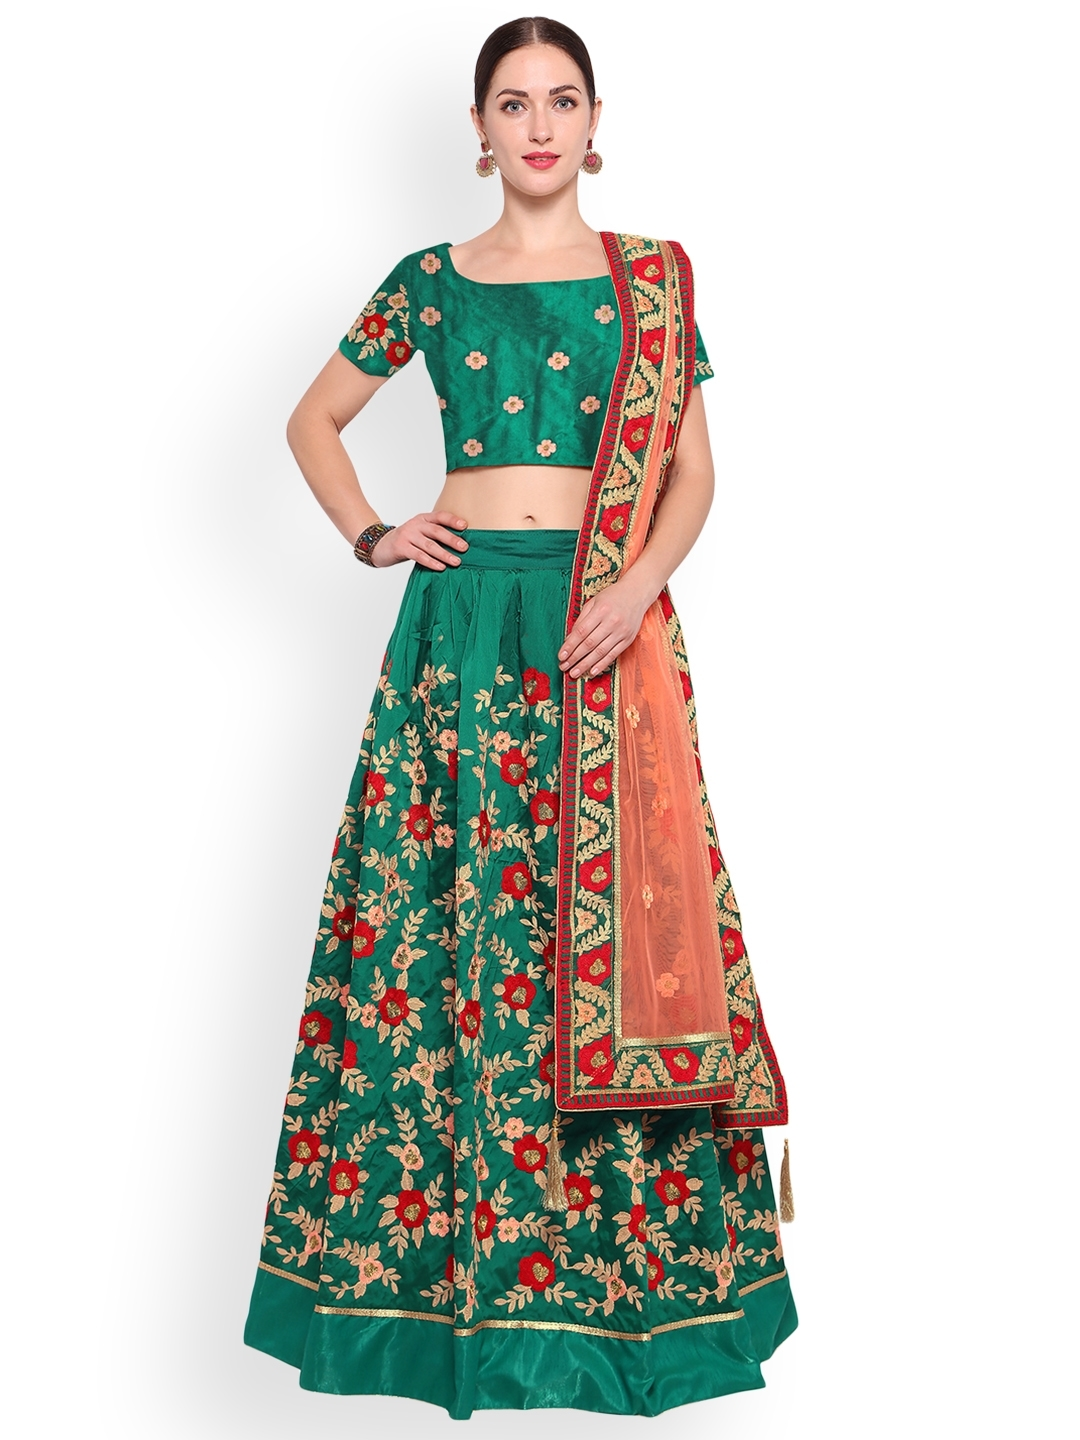 0c37188a7 Styles Closet Green   Pink Embroidered Semi-Stitched Lehenga   Unstitched  Blouse with Dupatta